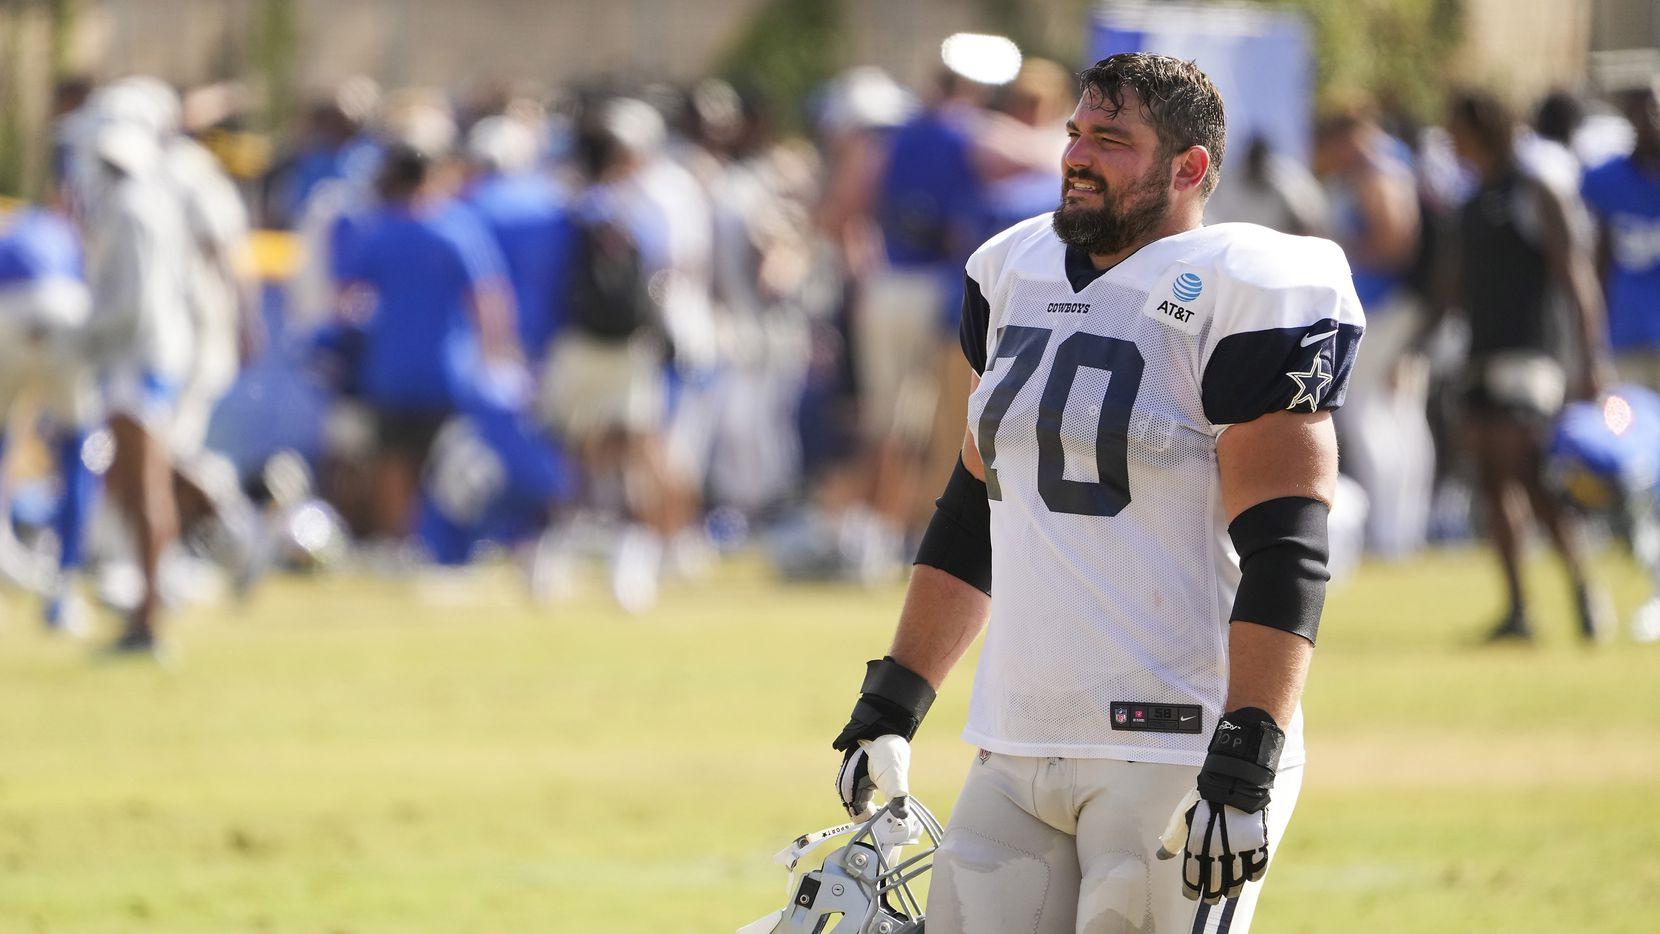 Dallas Cowboys guard Zack Martin (70) leaves the field following a joint practice with the Los Angeles Rams at training camp on Saturday, Aug. 7, 2021, in Oxnard, Calif.